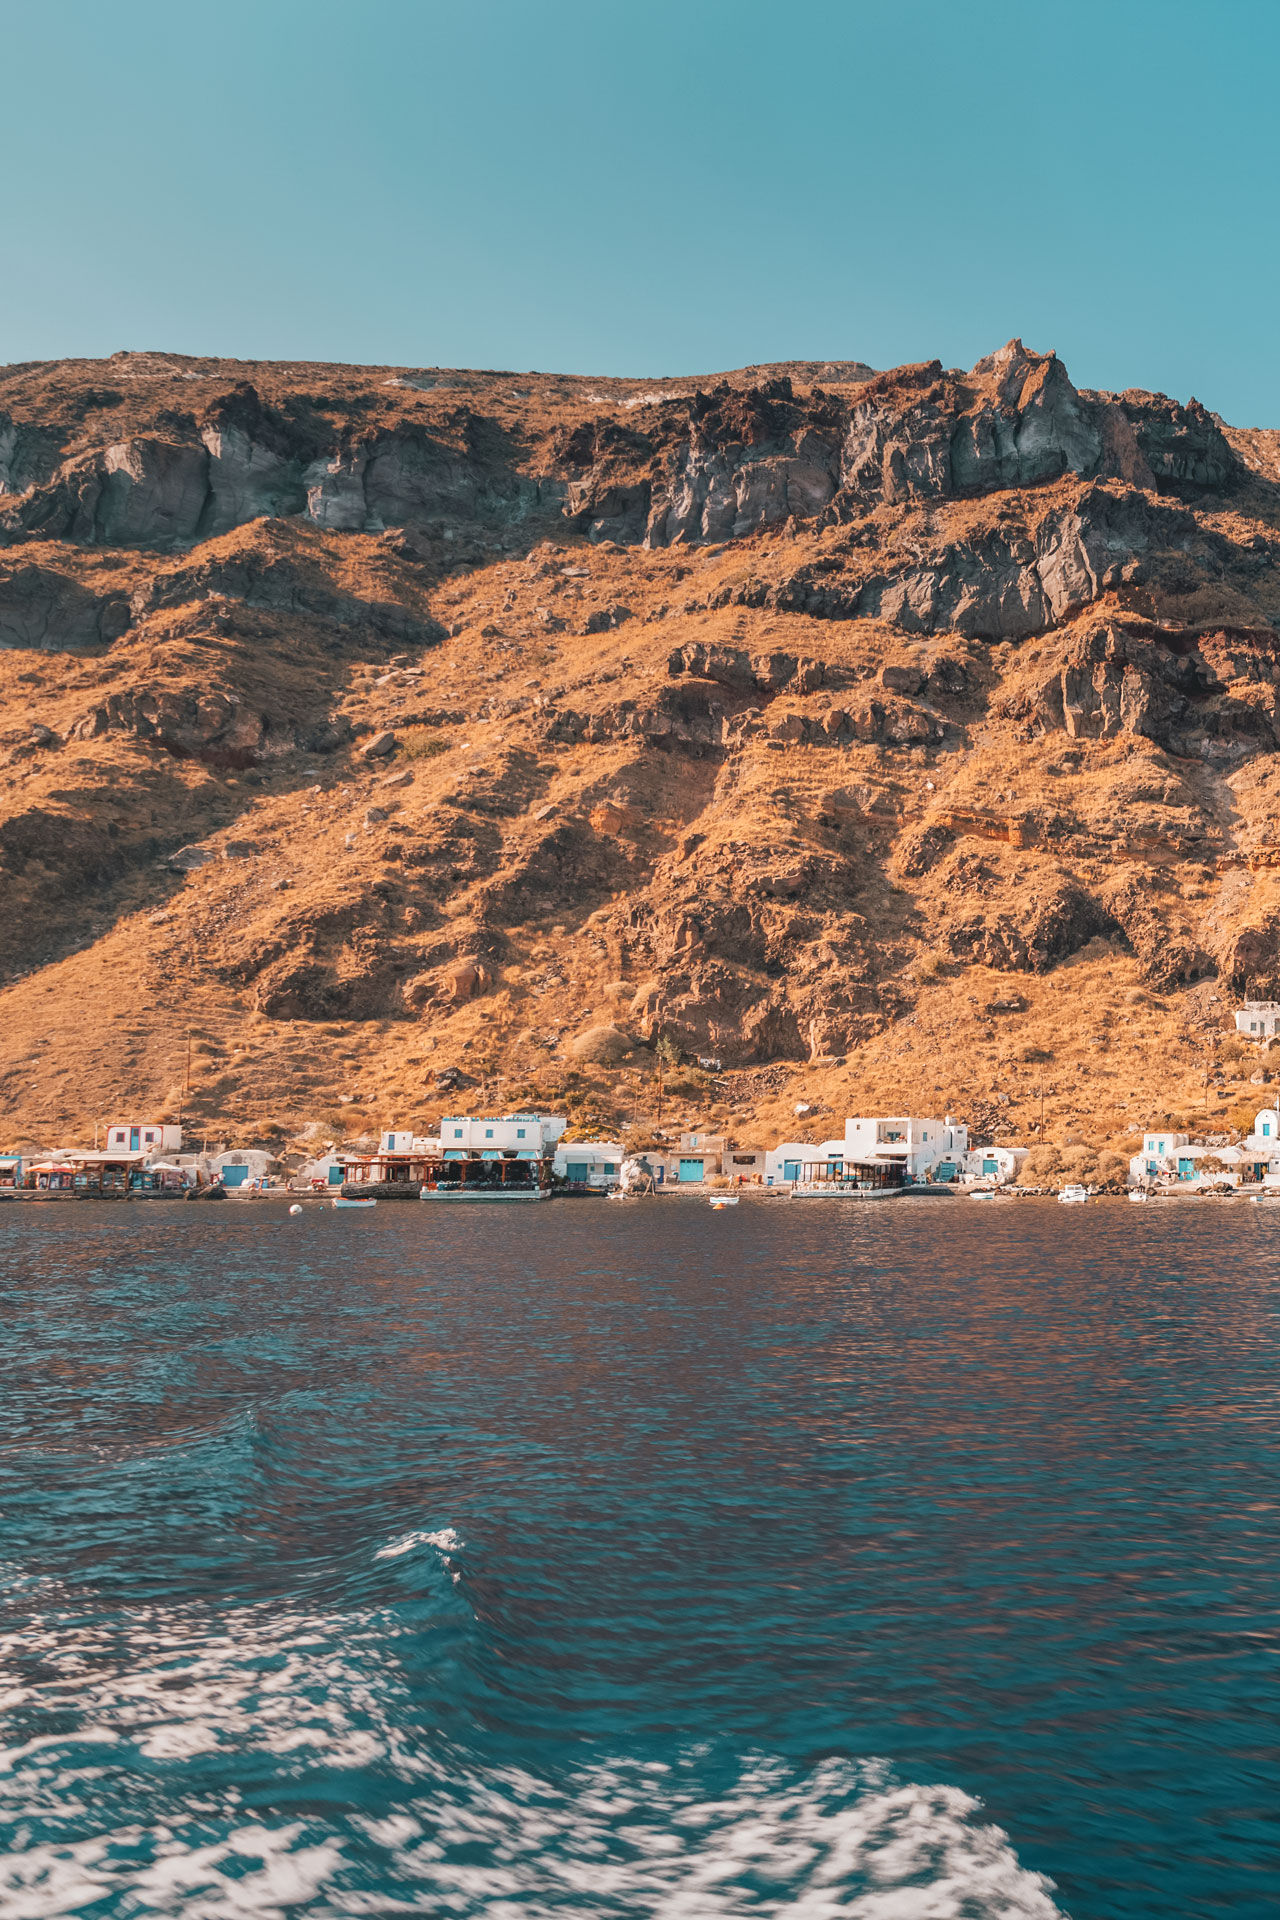 View from a boat to the harbor Ormos Korfou in Thirassia, Santorini